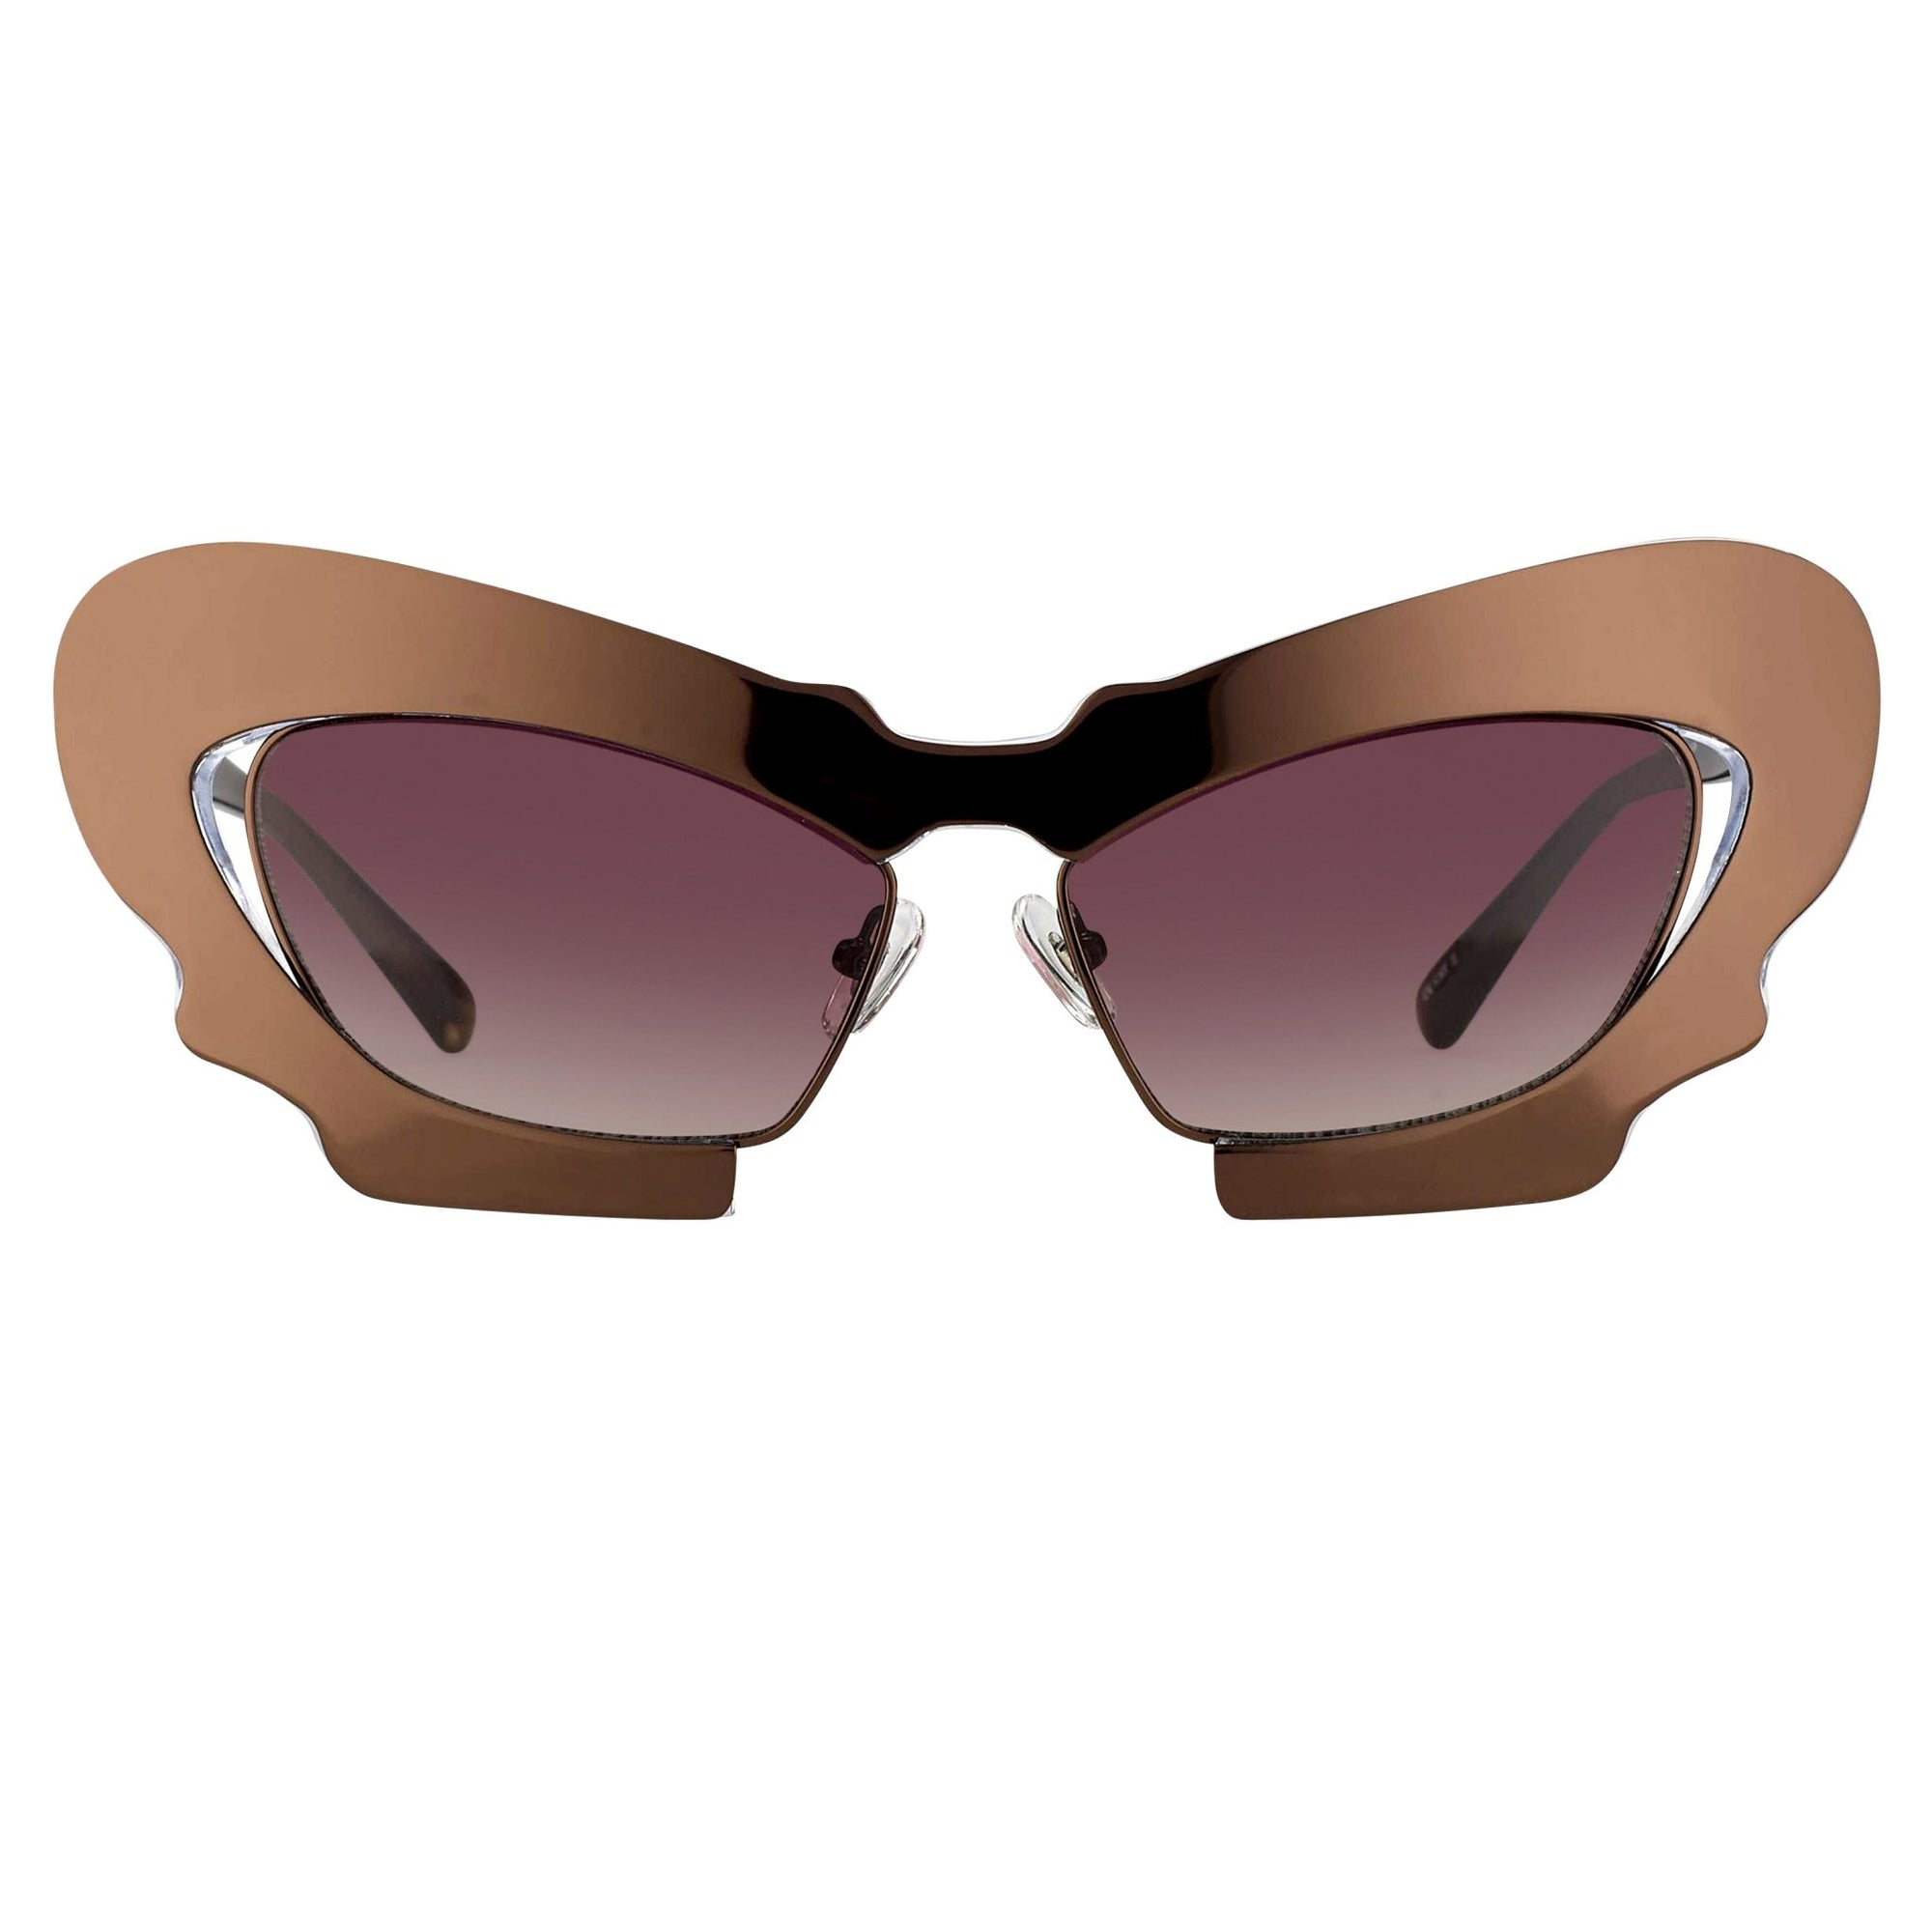 Prabal Gurung Sunglasses Female Cat Eye Chocolate Bronze Category 2 Red Gradient Lenses PG1C12SUN - Watches & Crystals